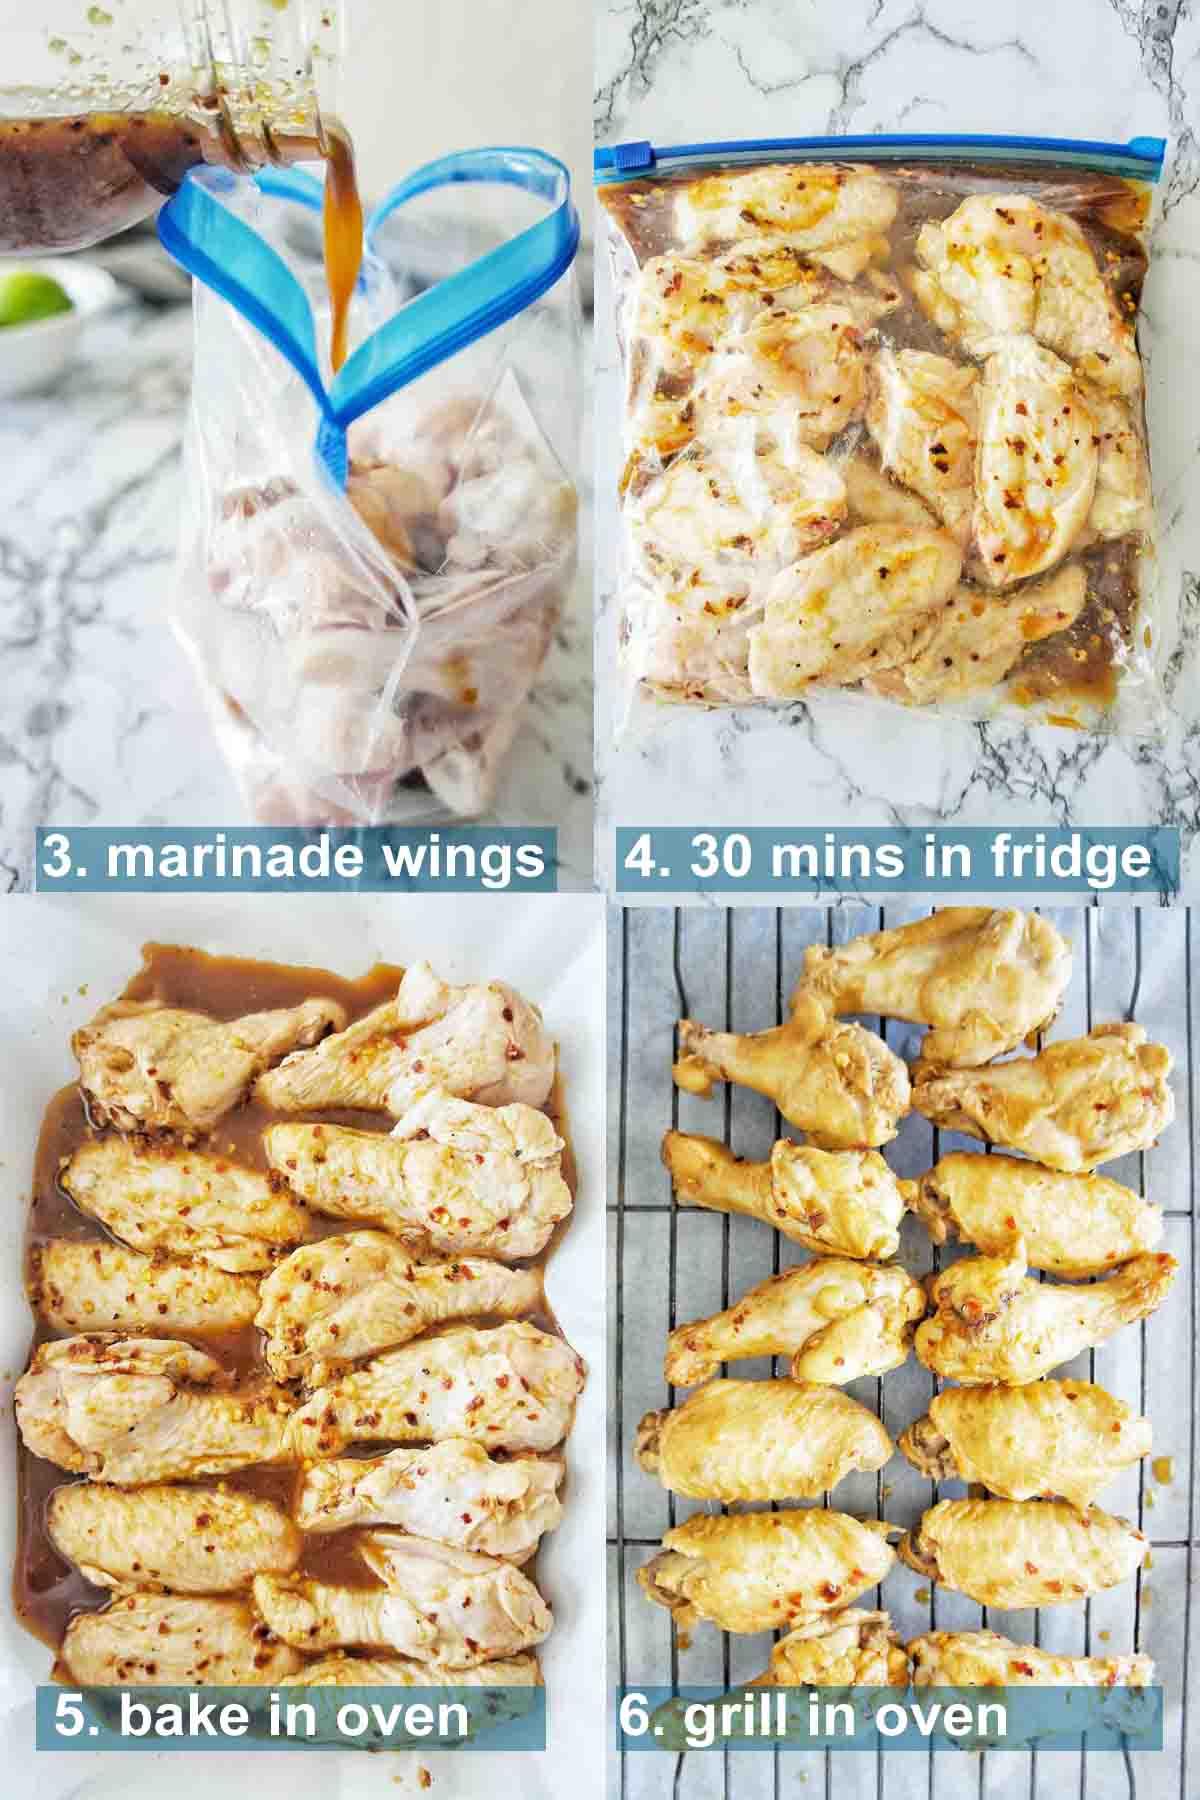 Steps for chili lime chicken wings with text overlay